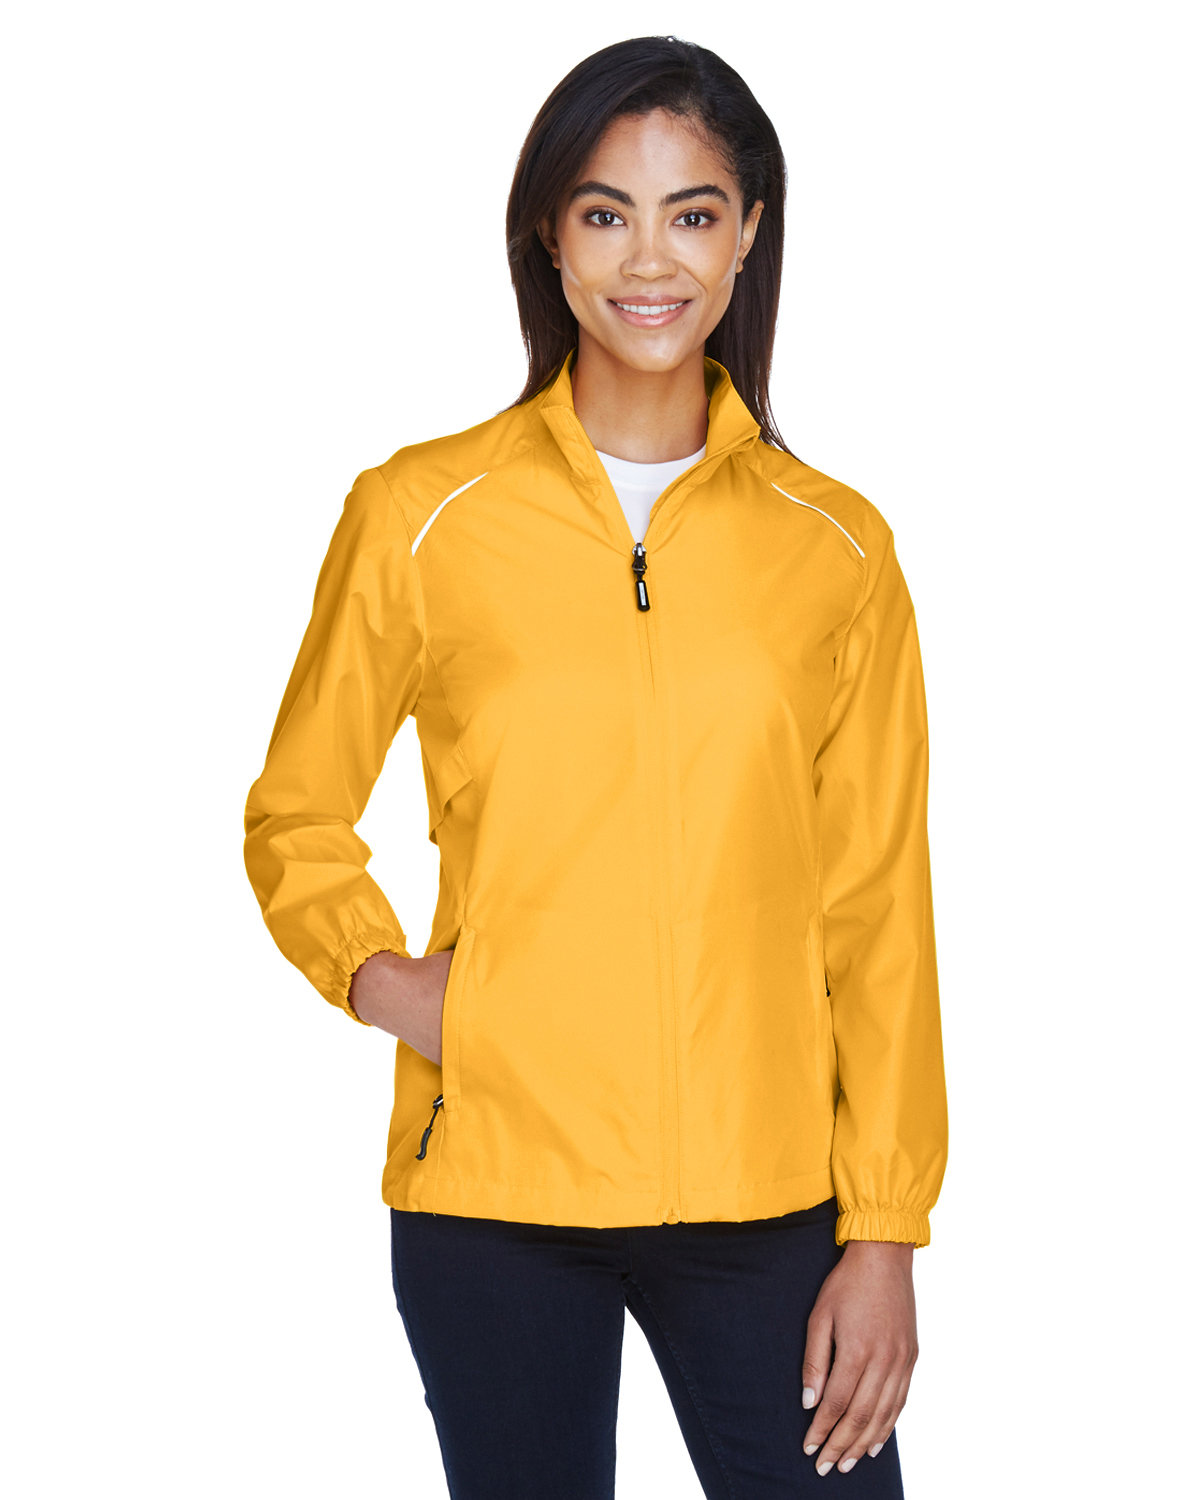 Core 365 Ladies' Motivate Unlined Lightweight Jacket CAMPUS GOLD